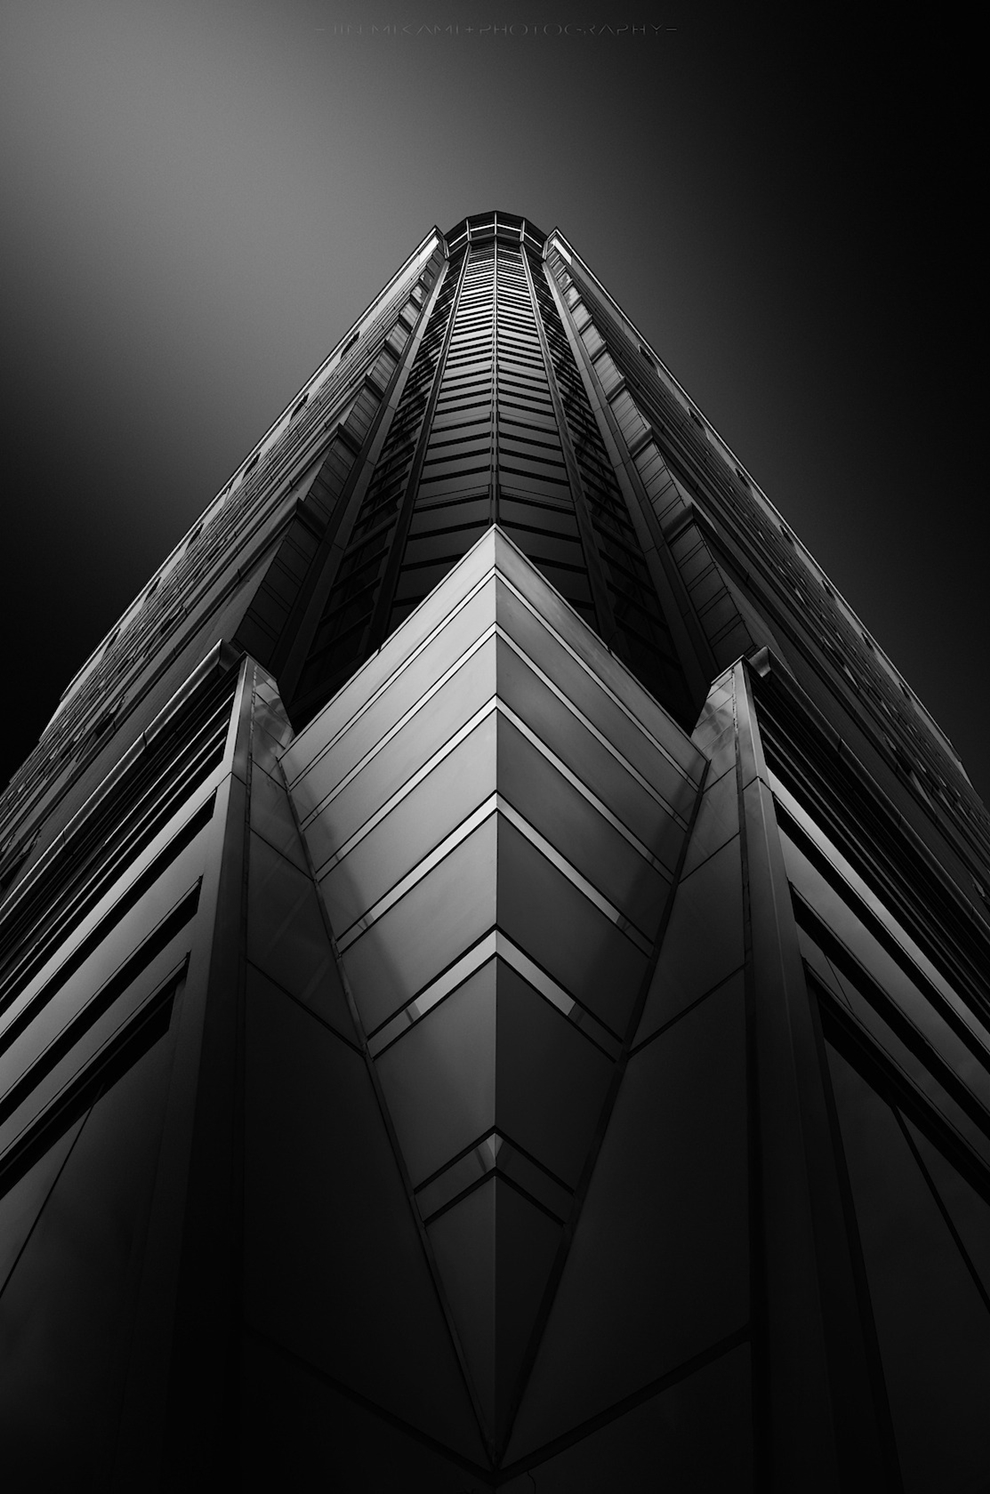 Black and white architecture from the photographer Jina Mikami 08